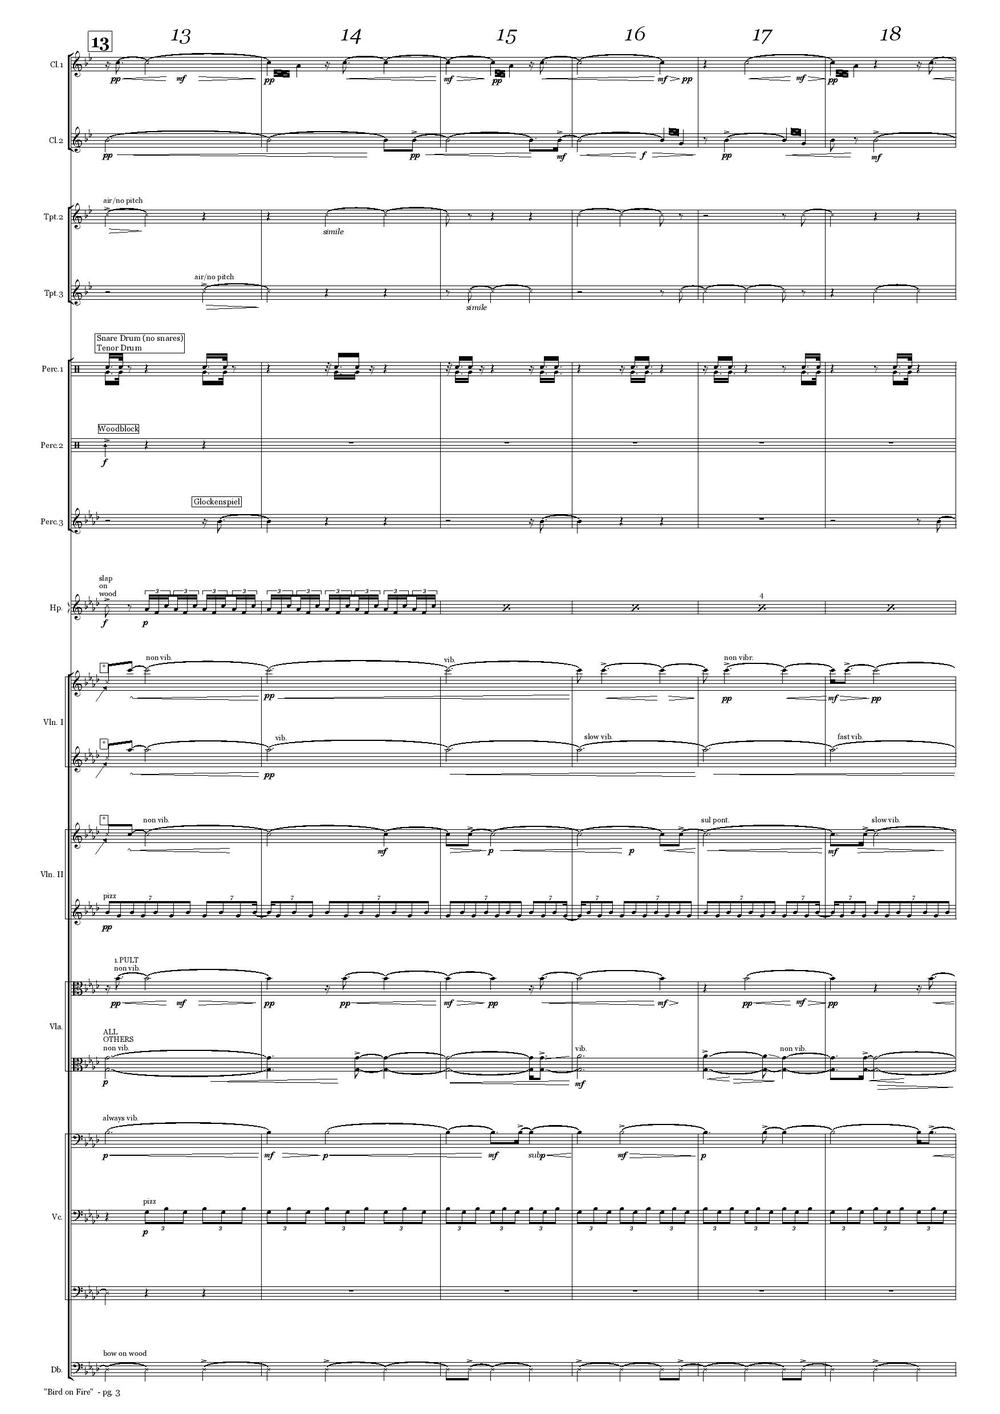 Bird on Fire - score-page-006.jpg